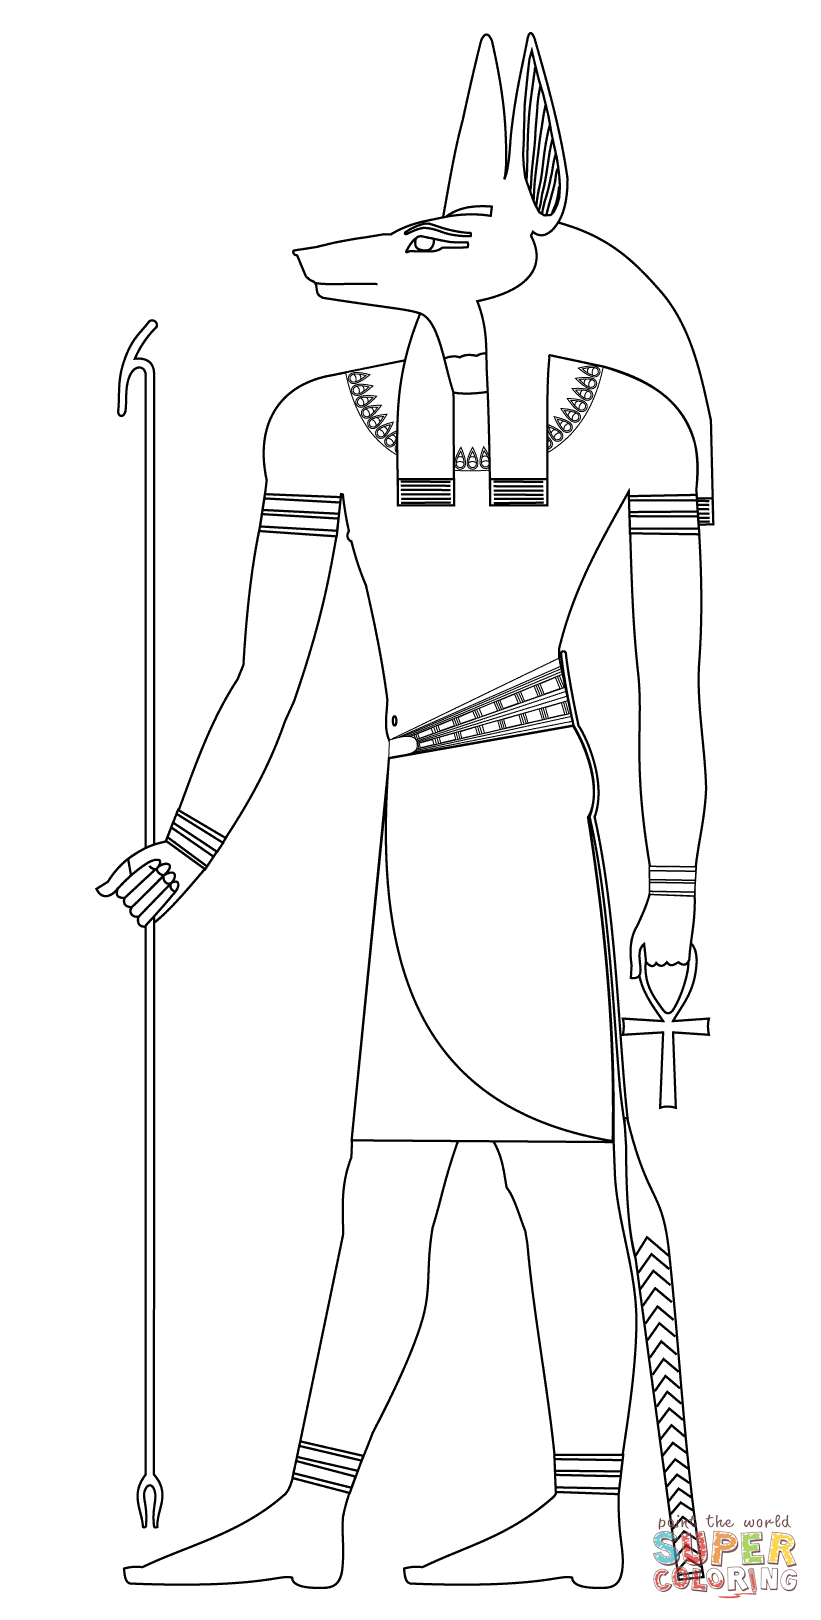 Anubis coloring, Download Anubis coloring for free 2019